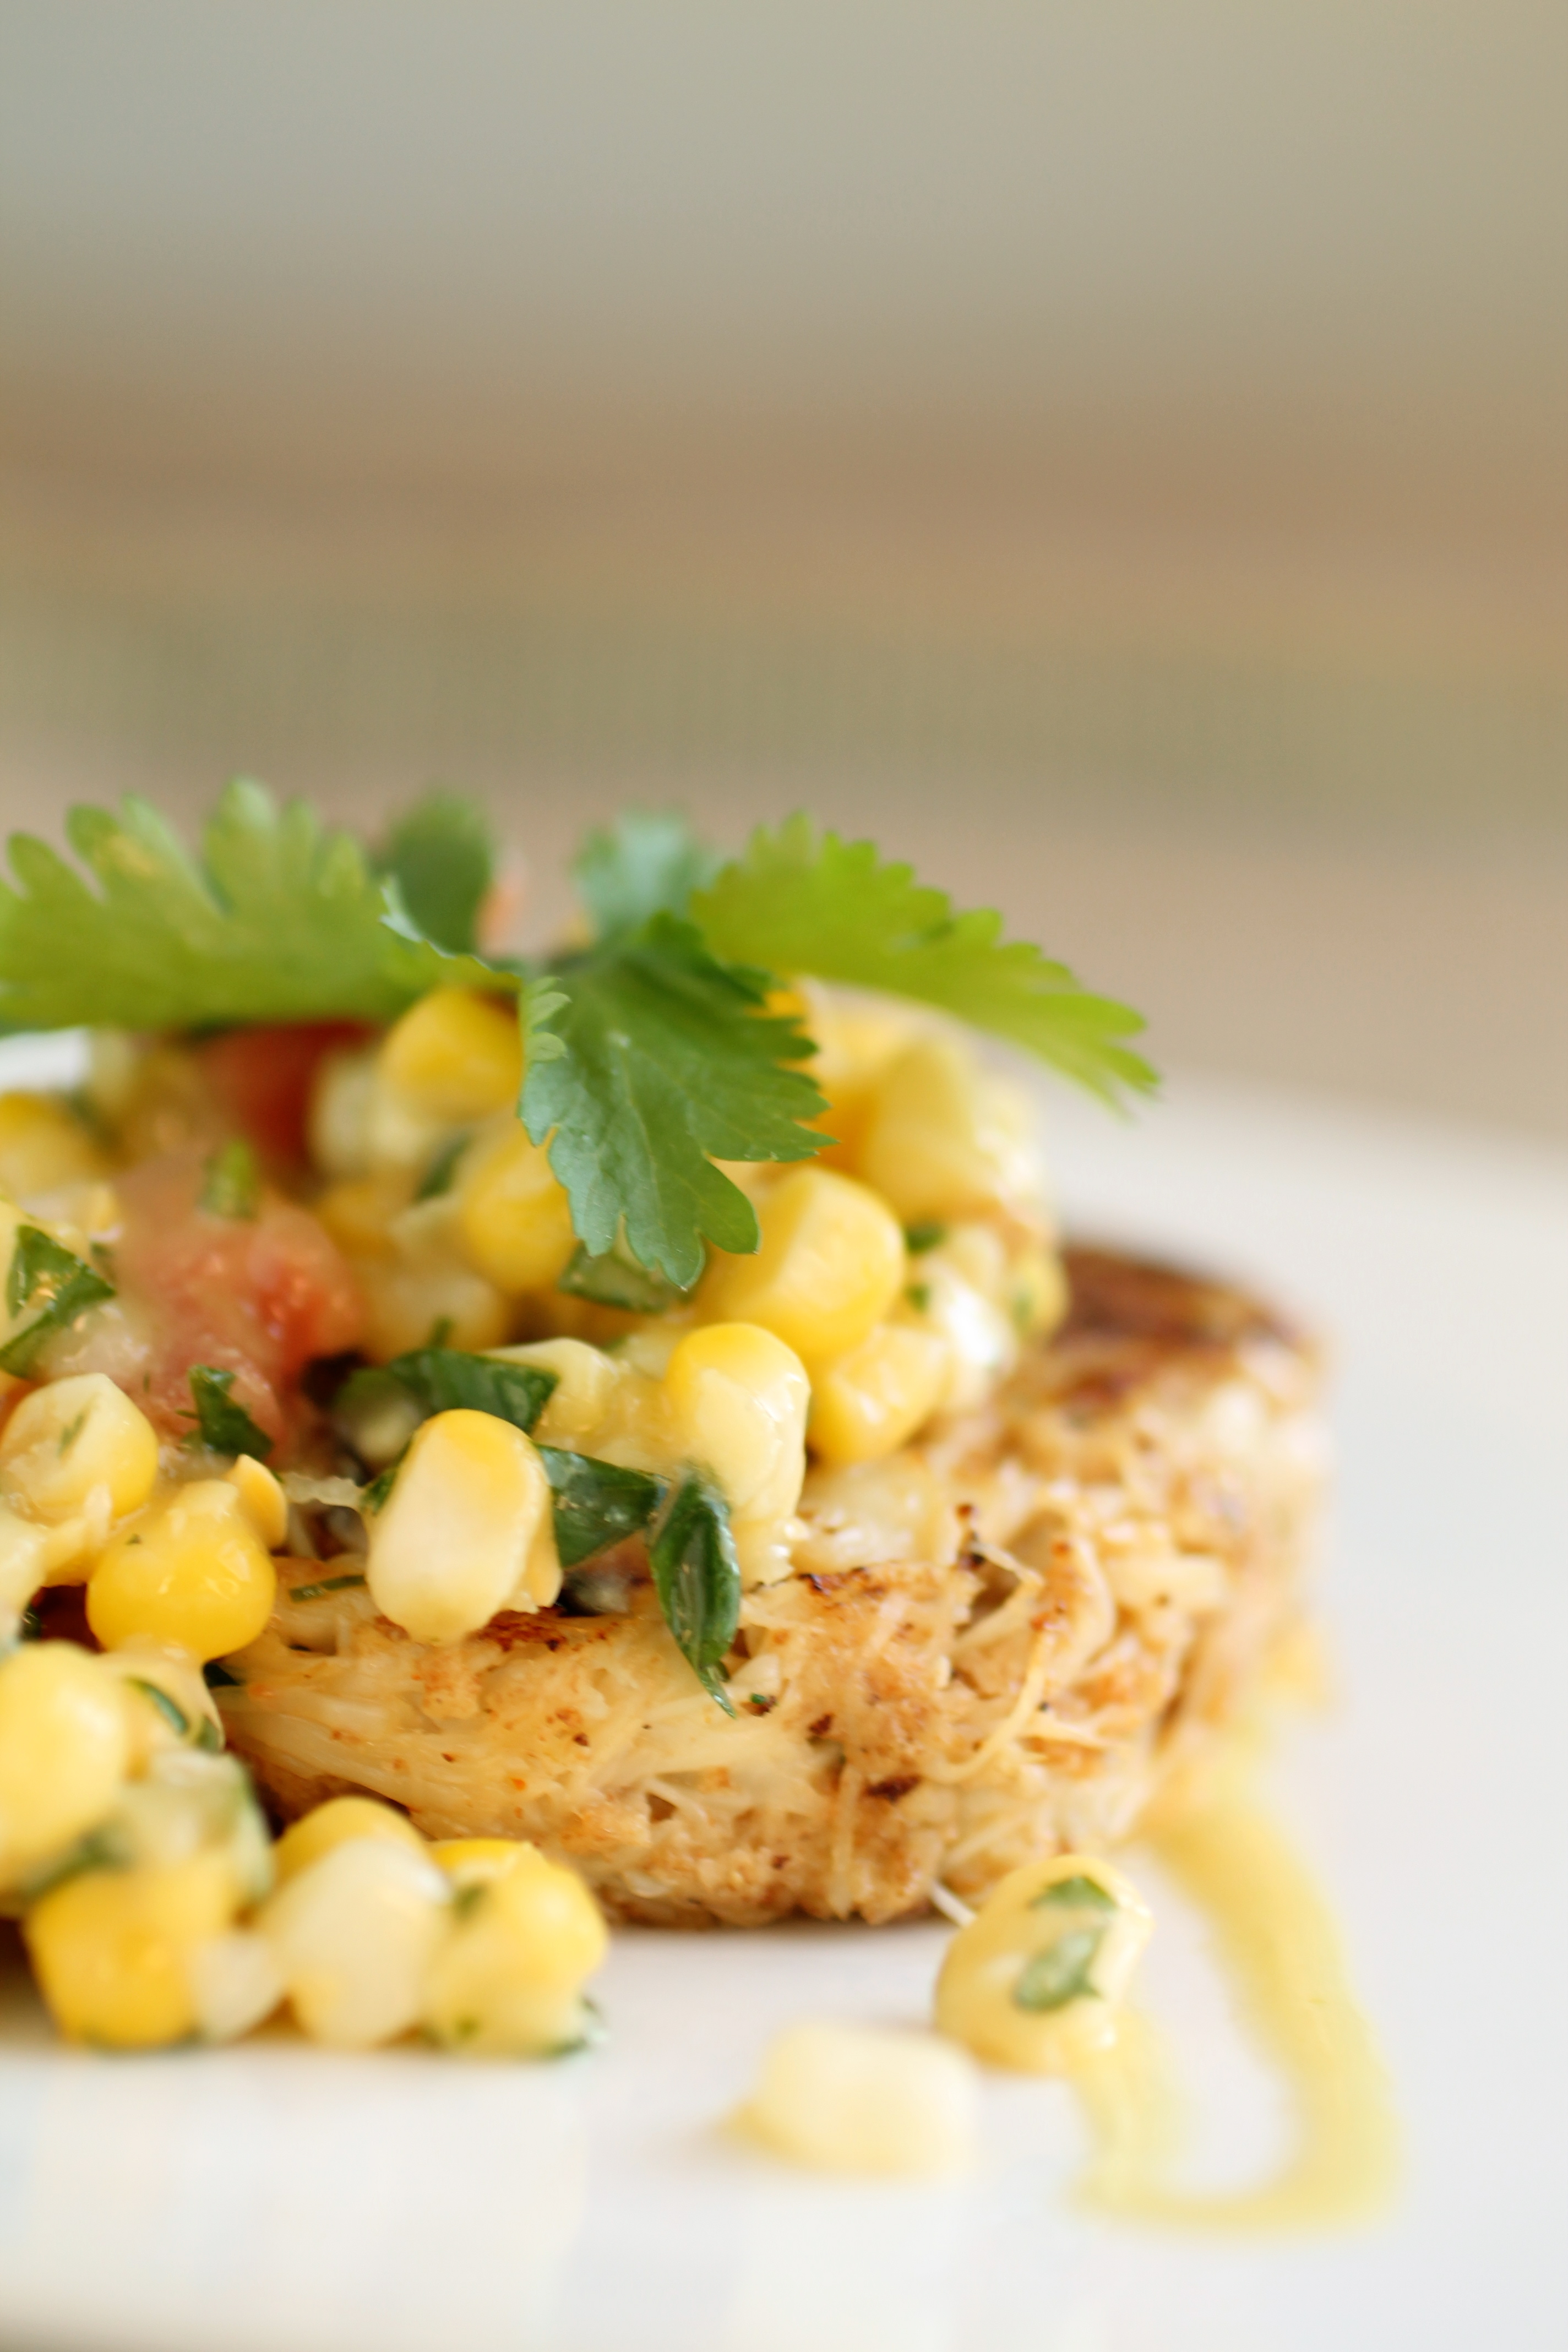 Crab cake topped with corn salsa and a sprig of fresh cilantro.